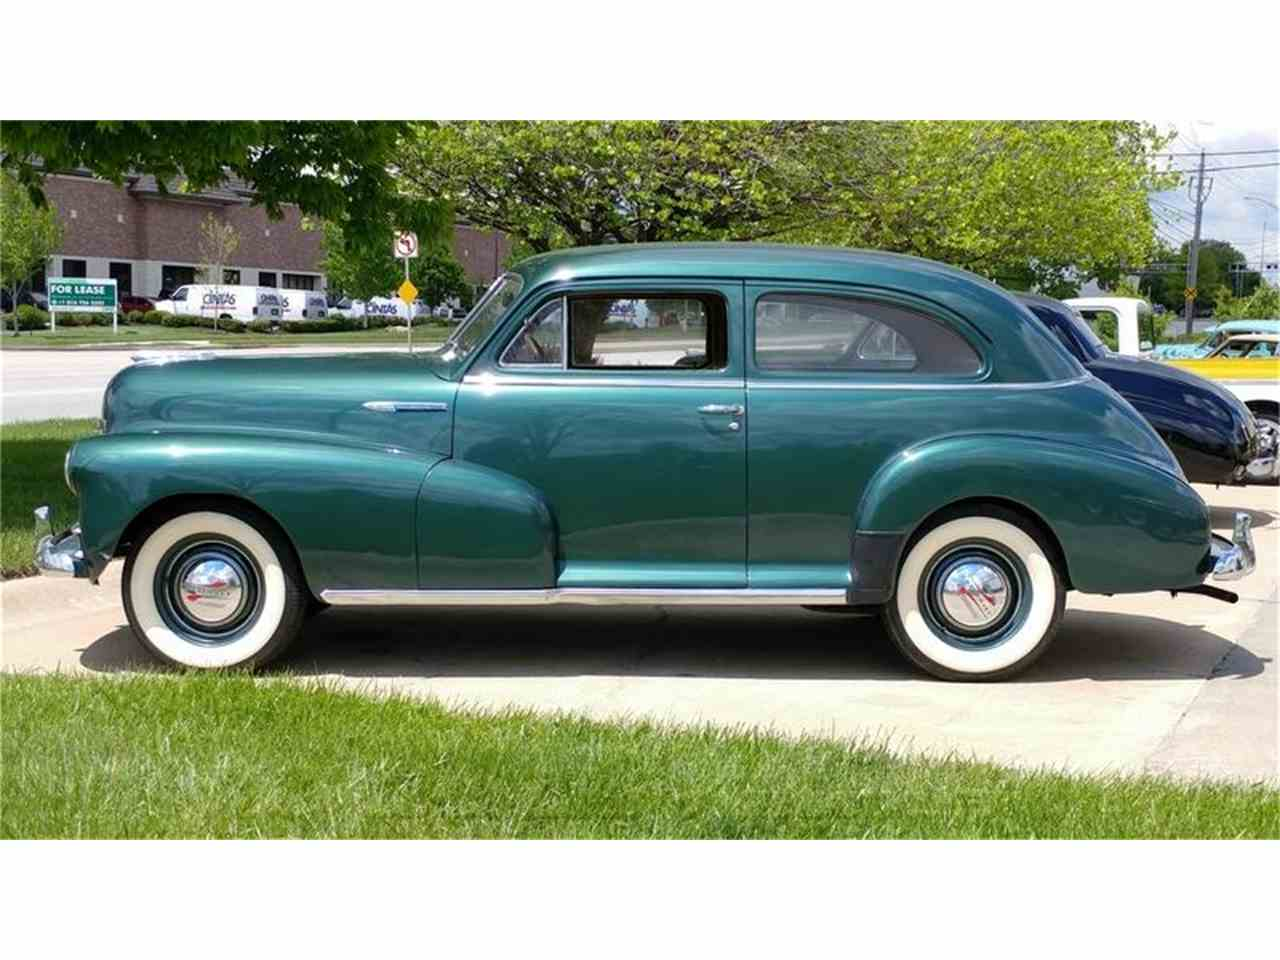 Coupe 1948 chevy stylemaster coupe for sale : 1946 to 1948 Chevrolet Stylemaster for Sale on ClassicCars.com - 6 ...